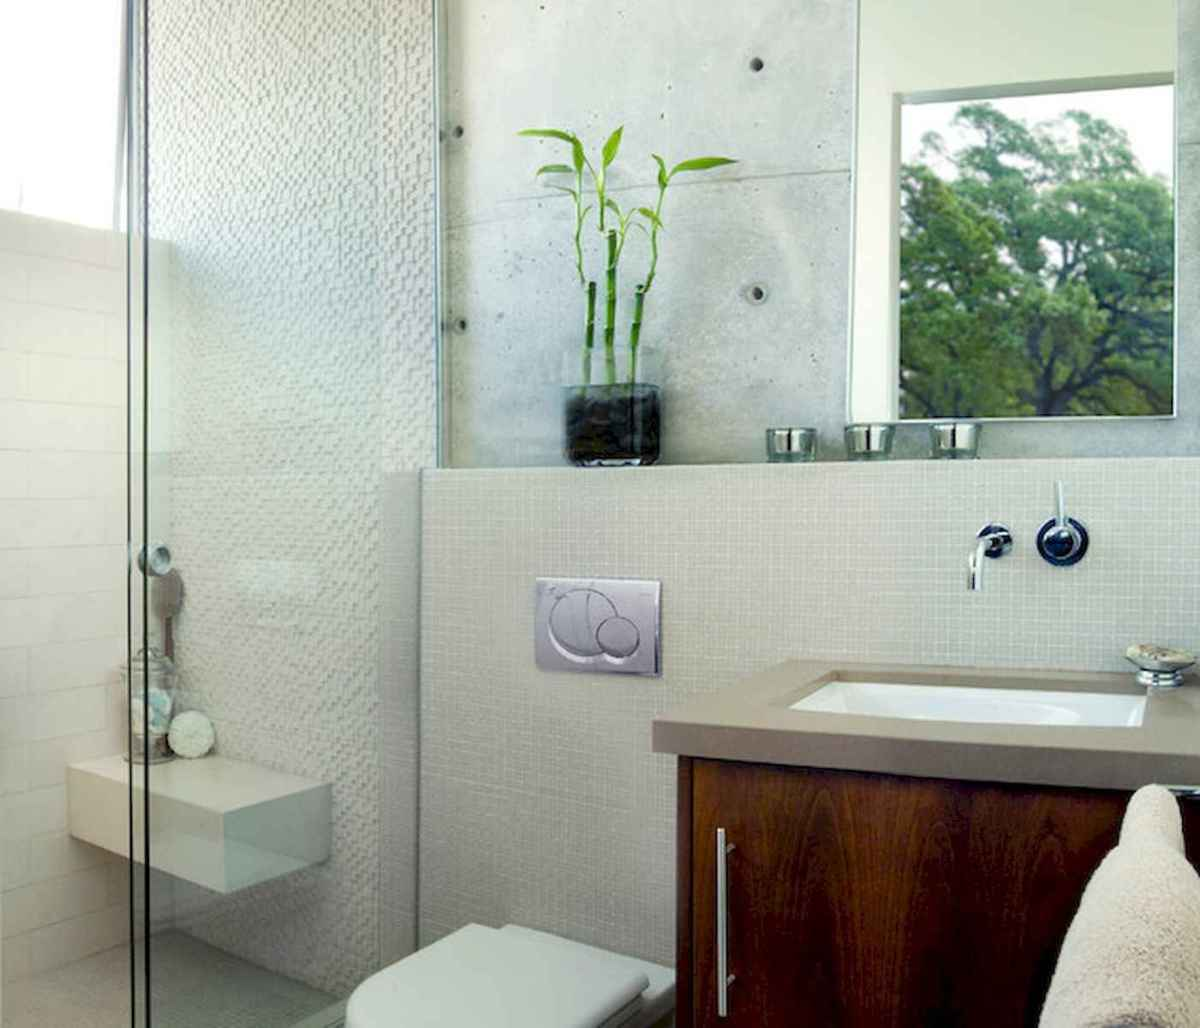 50 small guest bathroom ideas decorations and remodel (34)